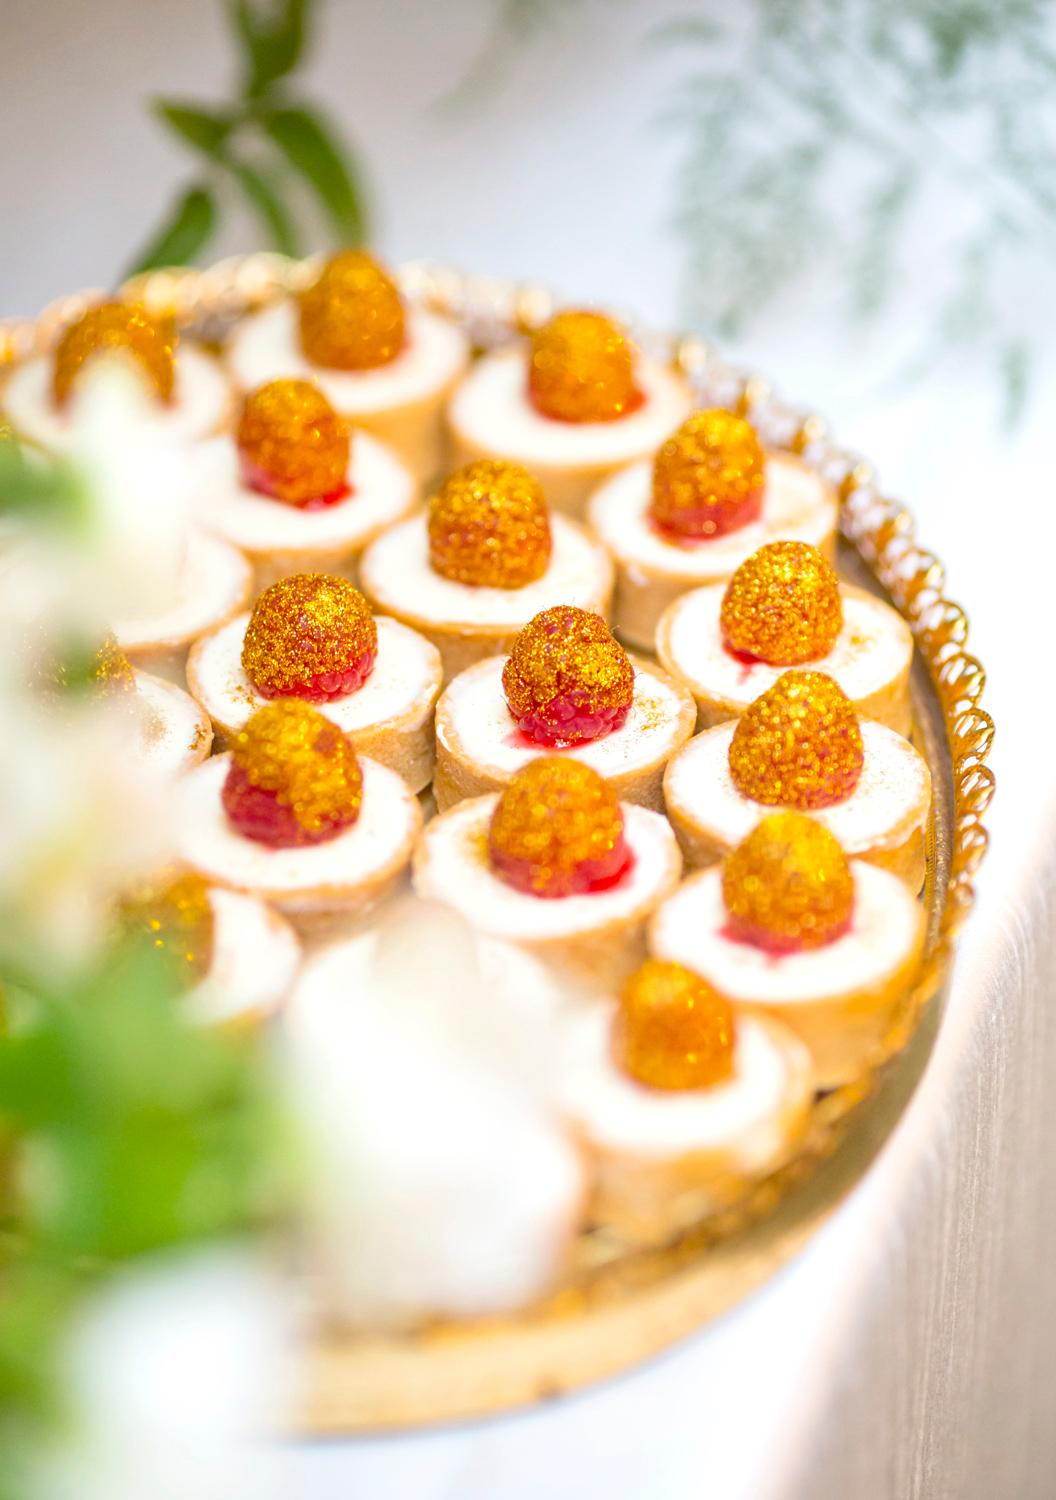 Golden Raspberry Topped Tart Bites are on display by Trophy Cupcakes for the VIP Wedding Tasting at their bakery at the Bravern. Guests of the VIP Wedding Tasting got to try the delectable cupcakes, 6-inch cakes, macarons, meringues, and other goodies on display while sipping champagne. (Sy Bean / Seattle Refined)<p></p>